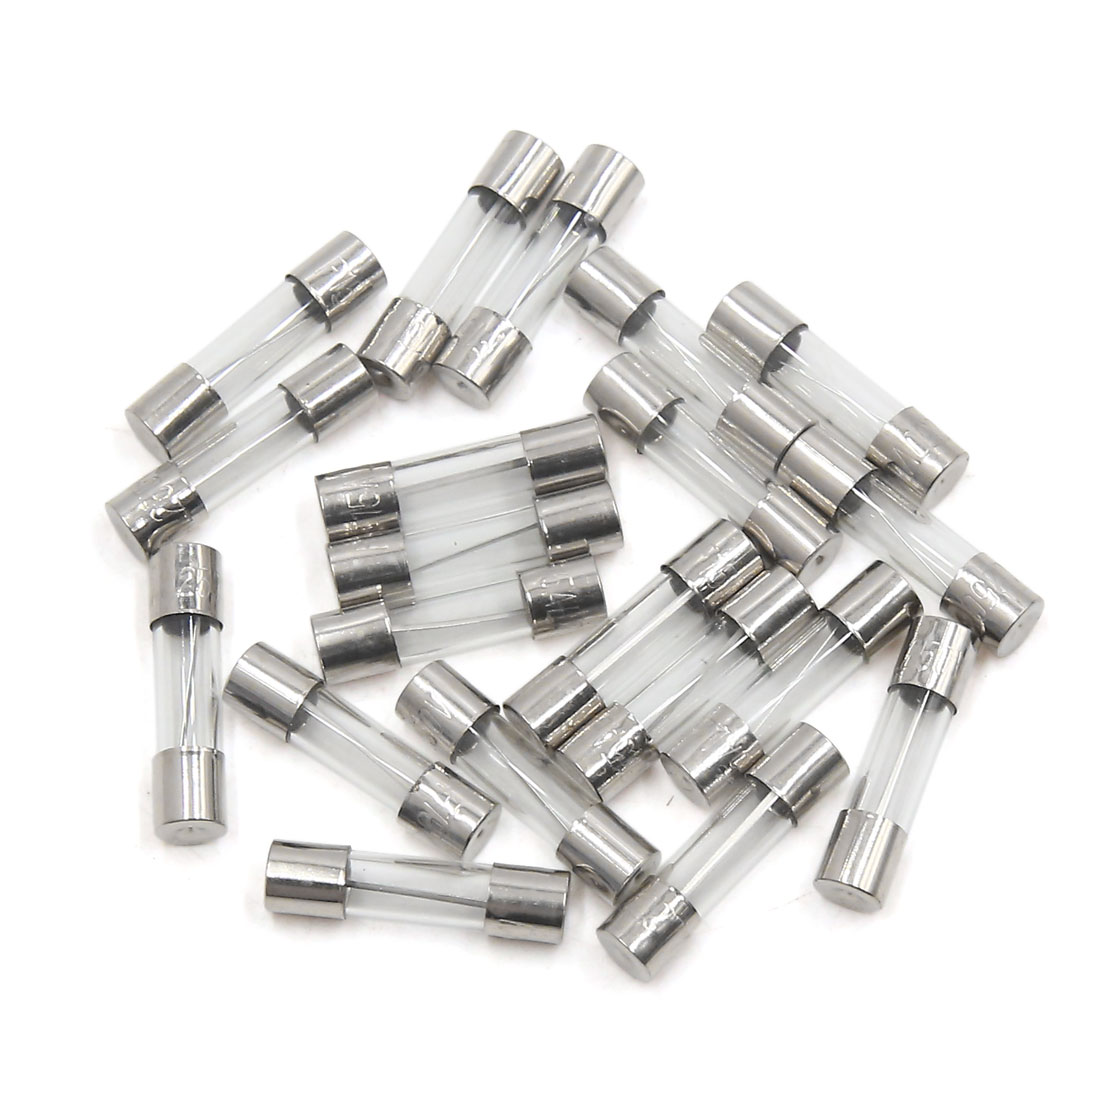 Universal 20Pcs 5 x 20mm 15A Fast Blow Type Glass Tube Fuse for Car Vehicle